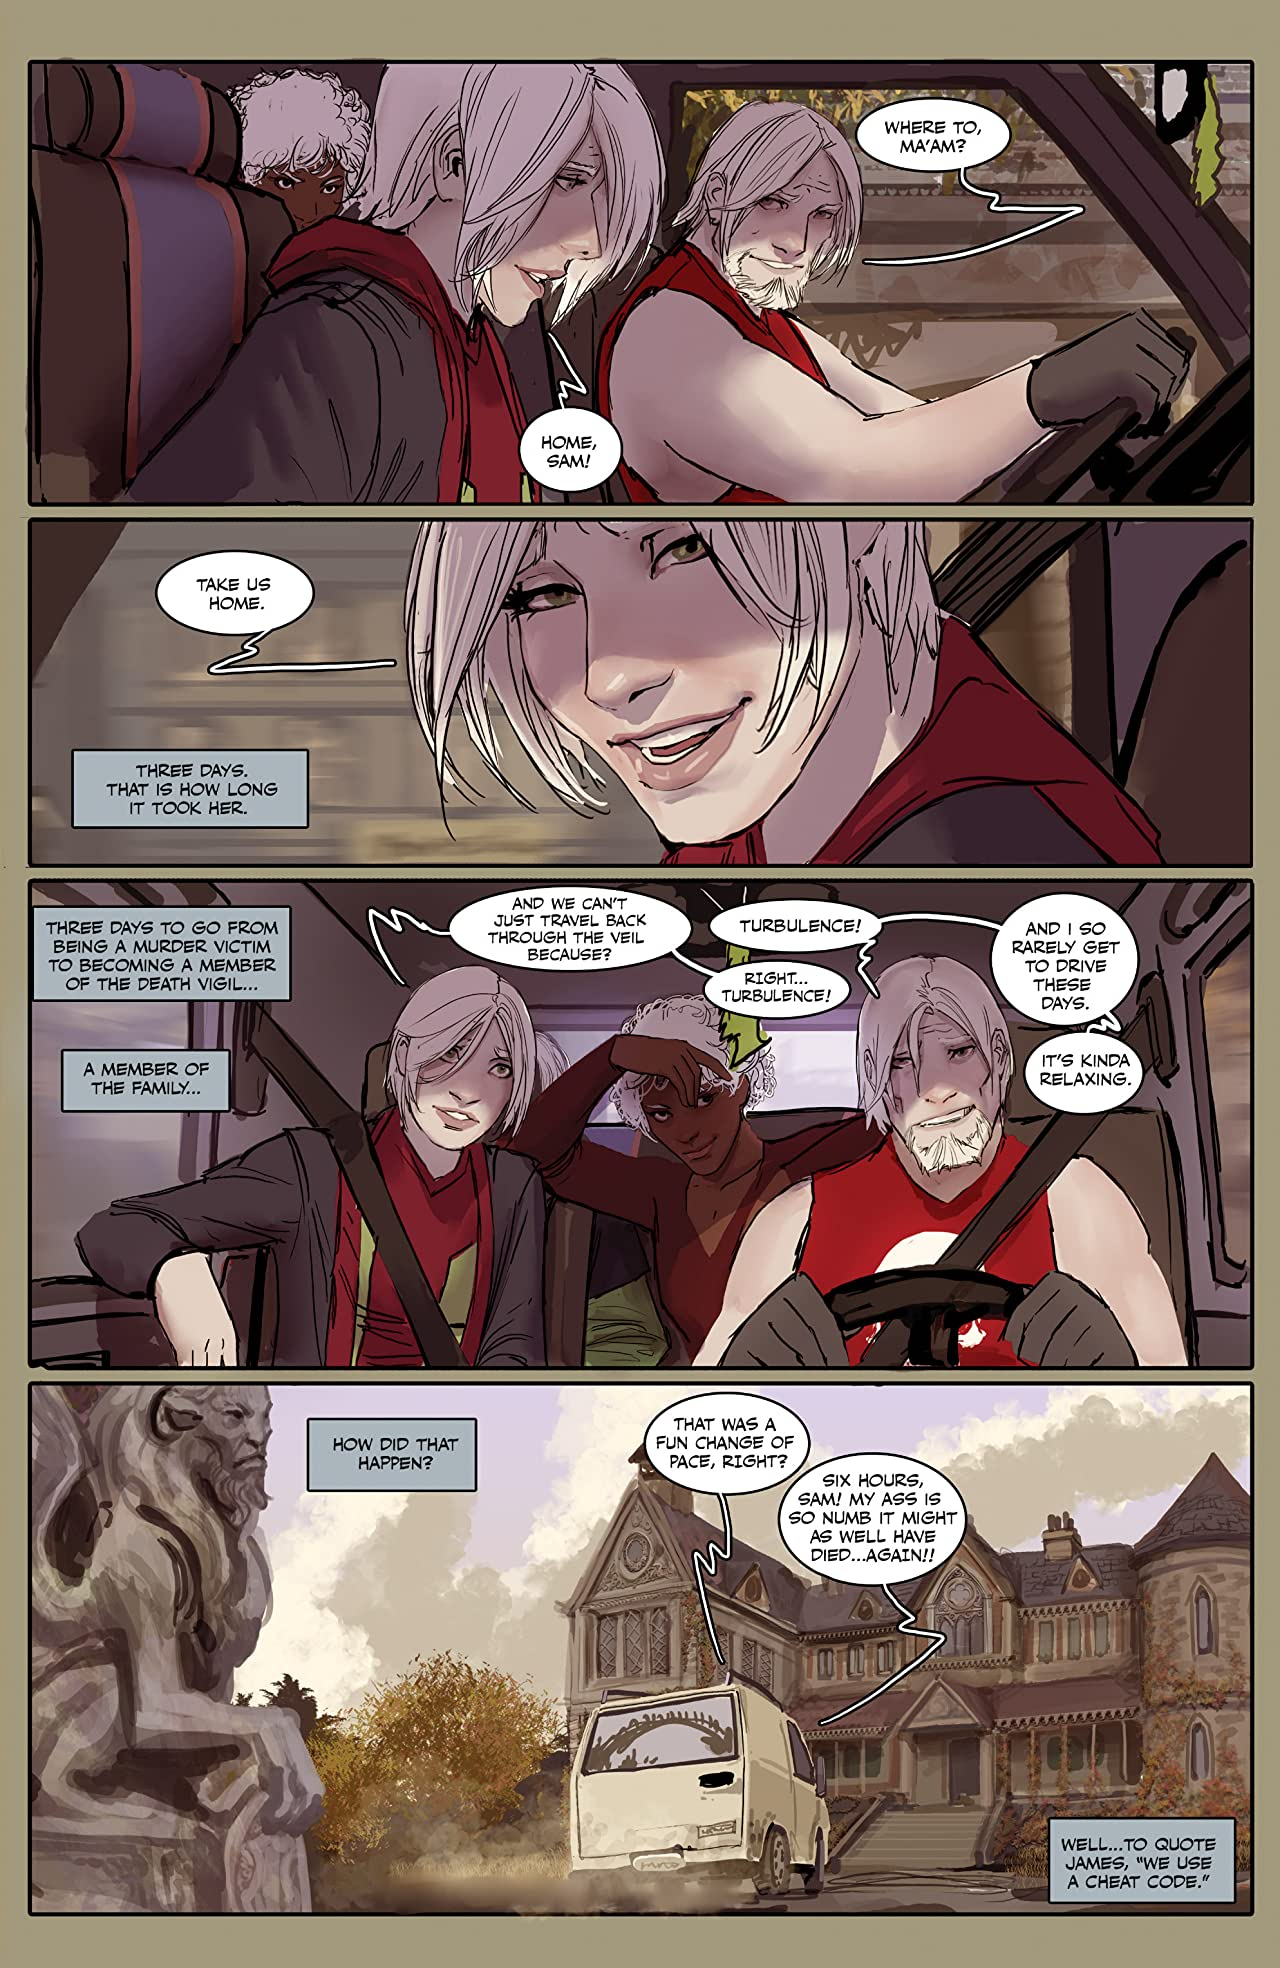 Death Vigil #3 (of 8)